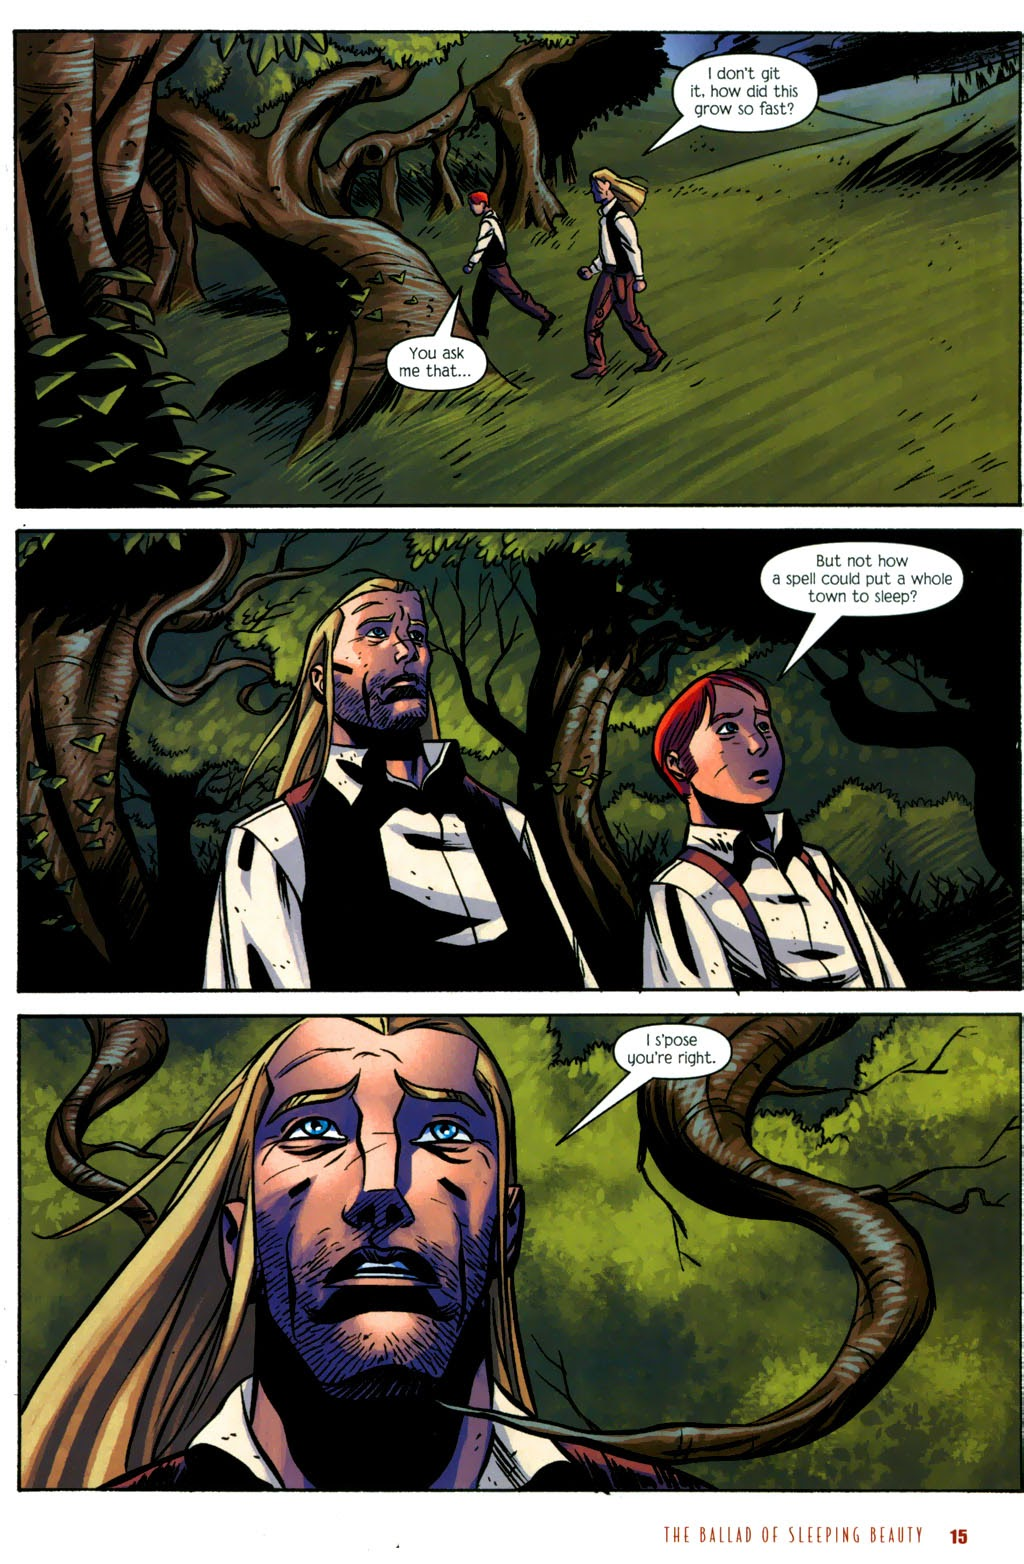 Read online The Ballad of Sleeping Beauty comic -  Issue #6 - 17